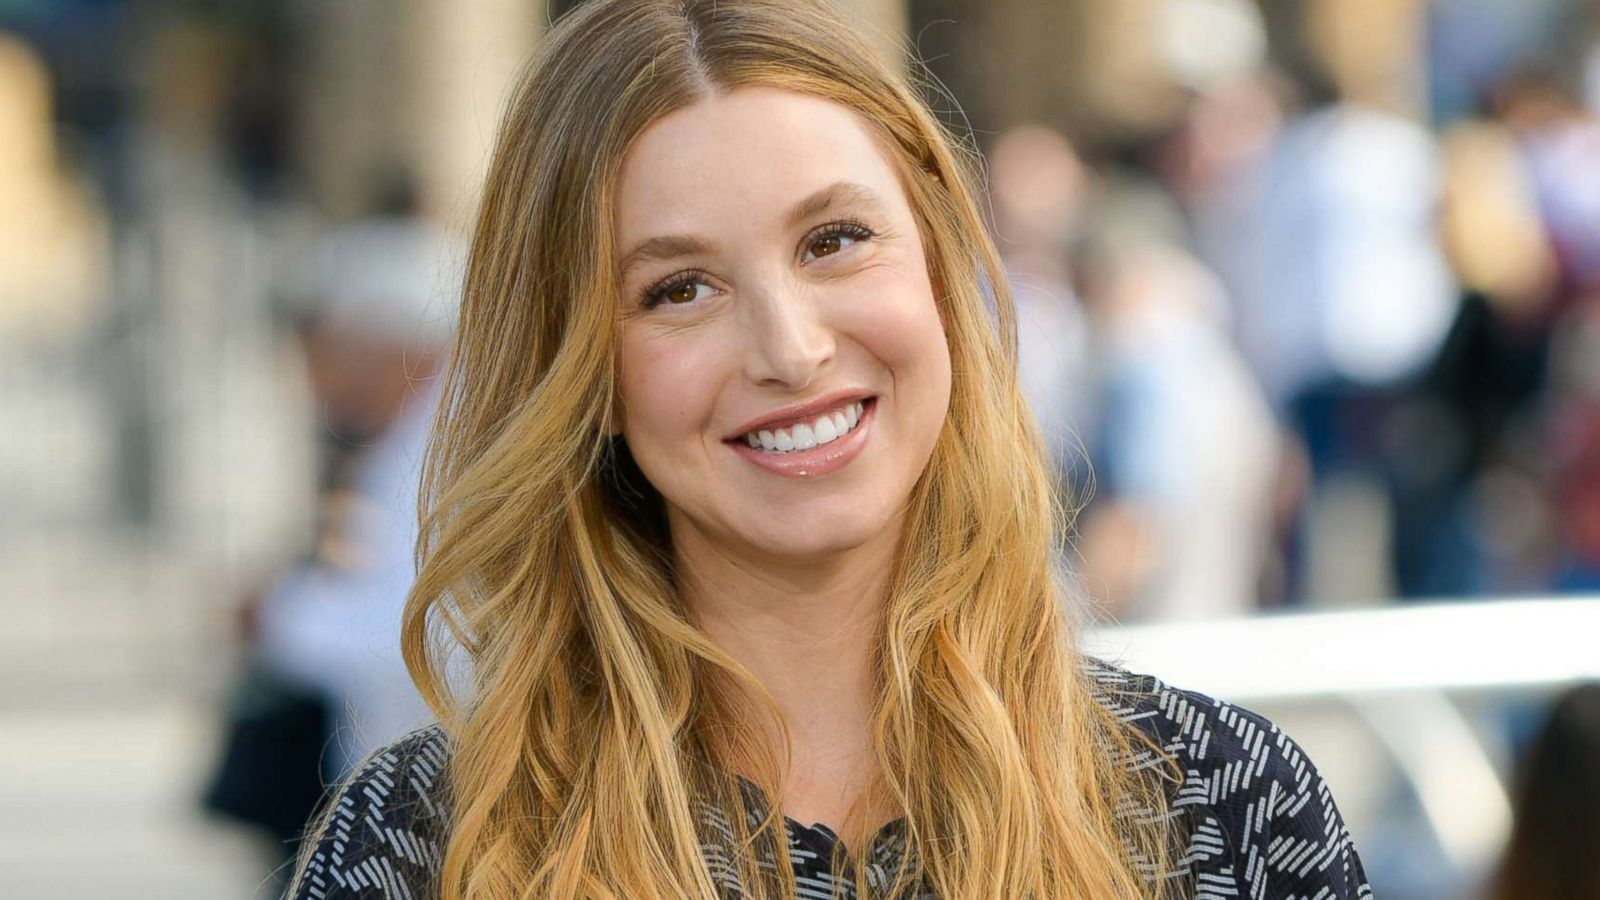 The Hills Star Whitney Port Gives Birth To A Son Abc News